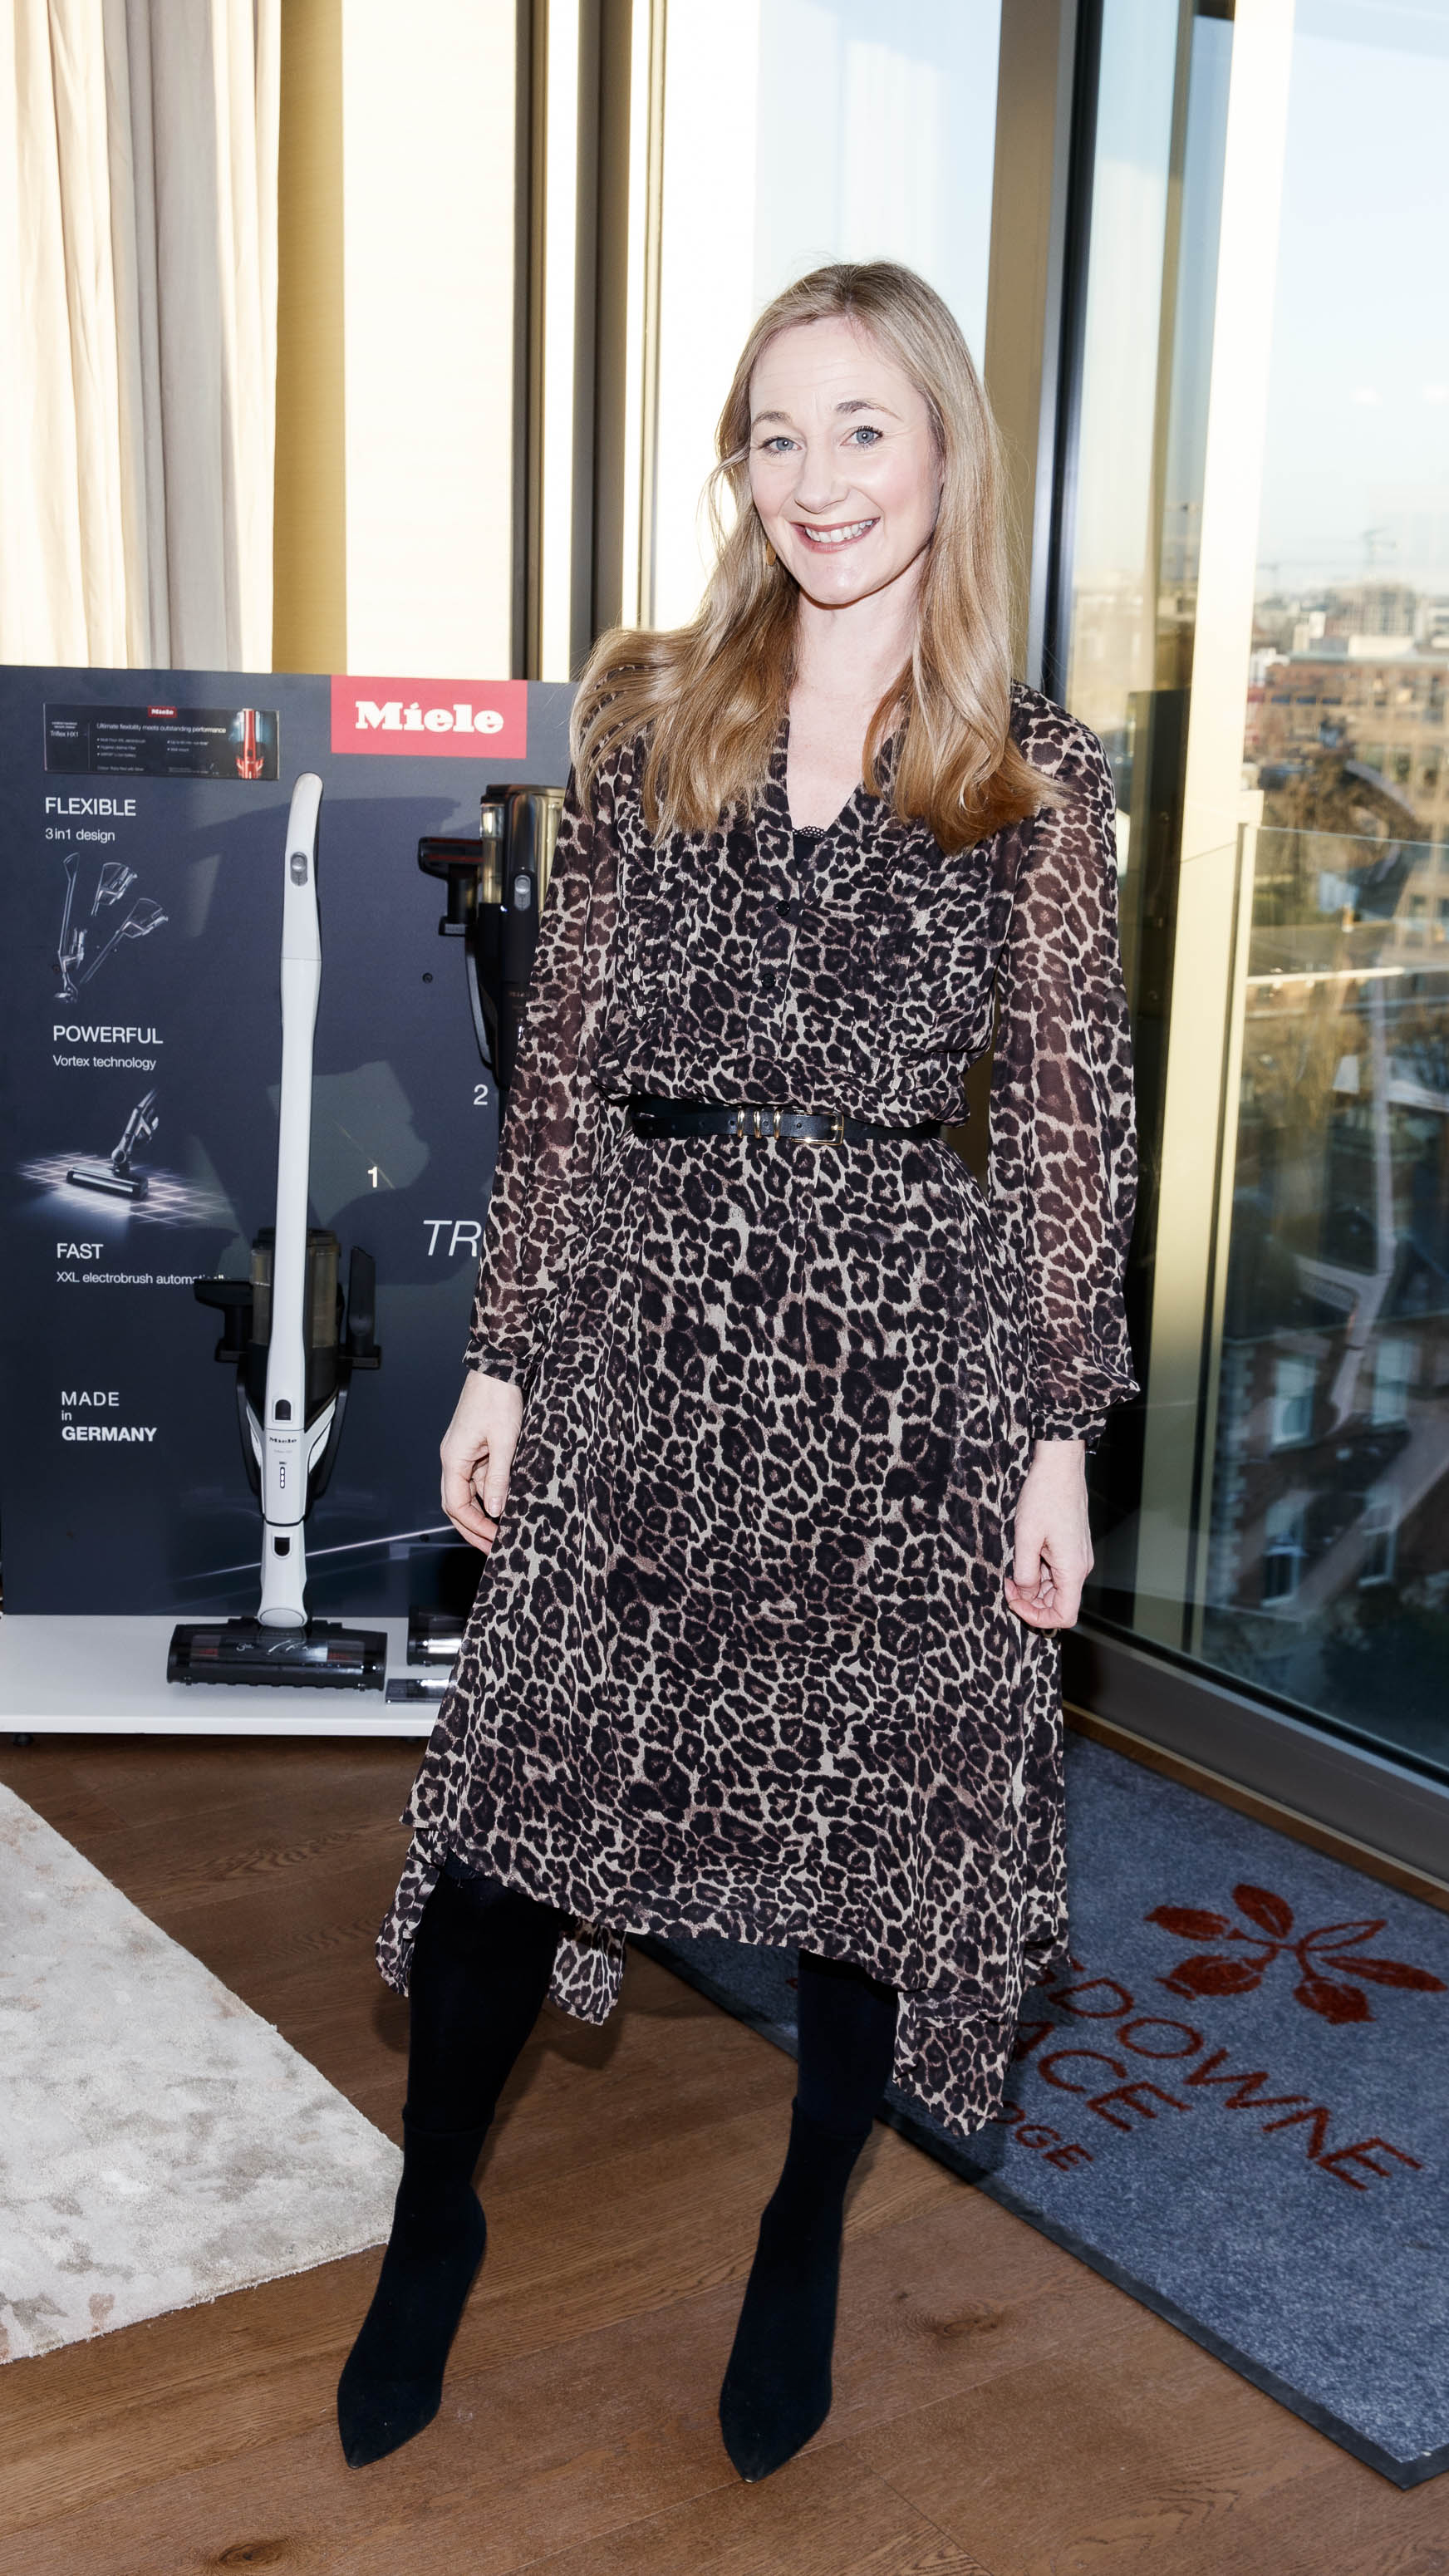 Ciara Elliott pictured at the launch of Miele Triflex. The world's leading manufacturer of cylinder vacuum cleaners, Miele, unveiled its first ever cordless handstick model at the stunning Landsdowne Place penthouse. Hosted by Miele managing director, Pat McGrath and in conversation with Dermot Bannon and Ciara Elliott, guests experienced the ultimate cordless vacuum cleaner, which is available in all major retailers from €499. Picture Andres Poveda